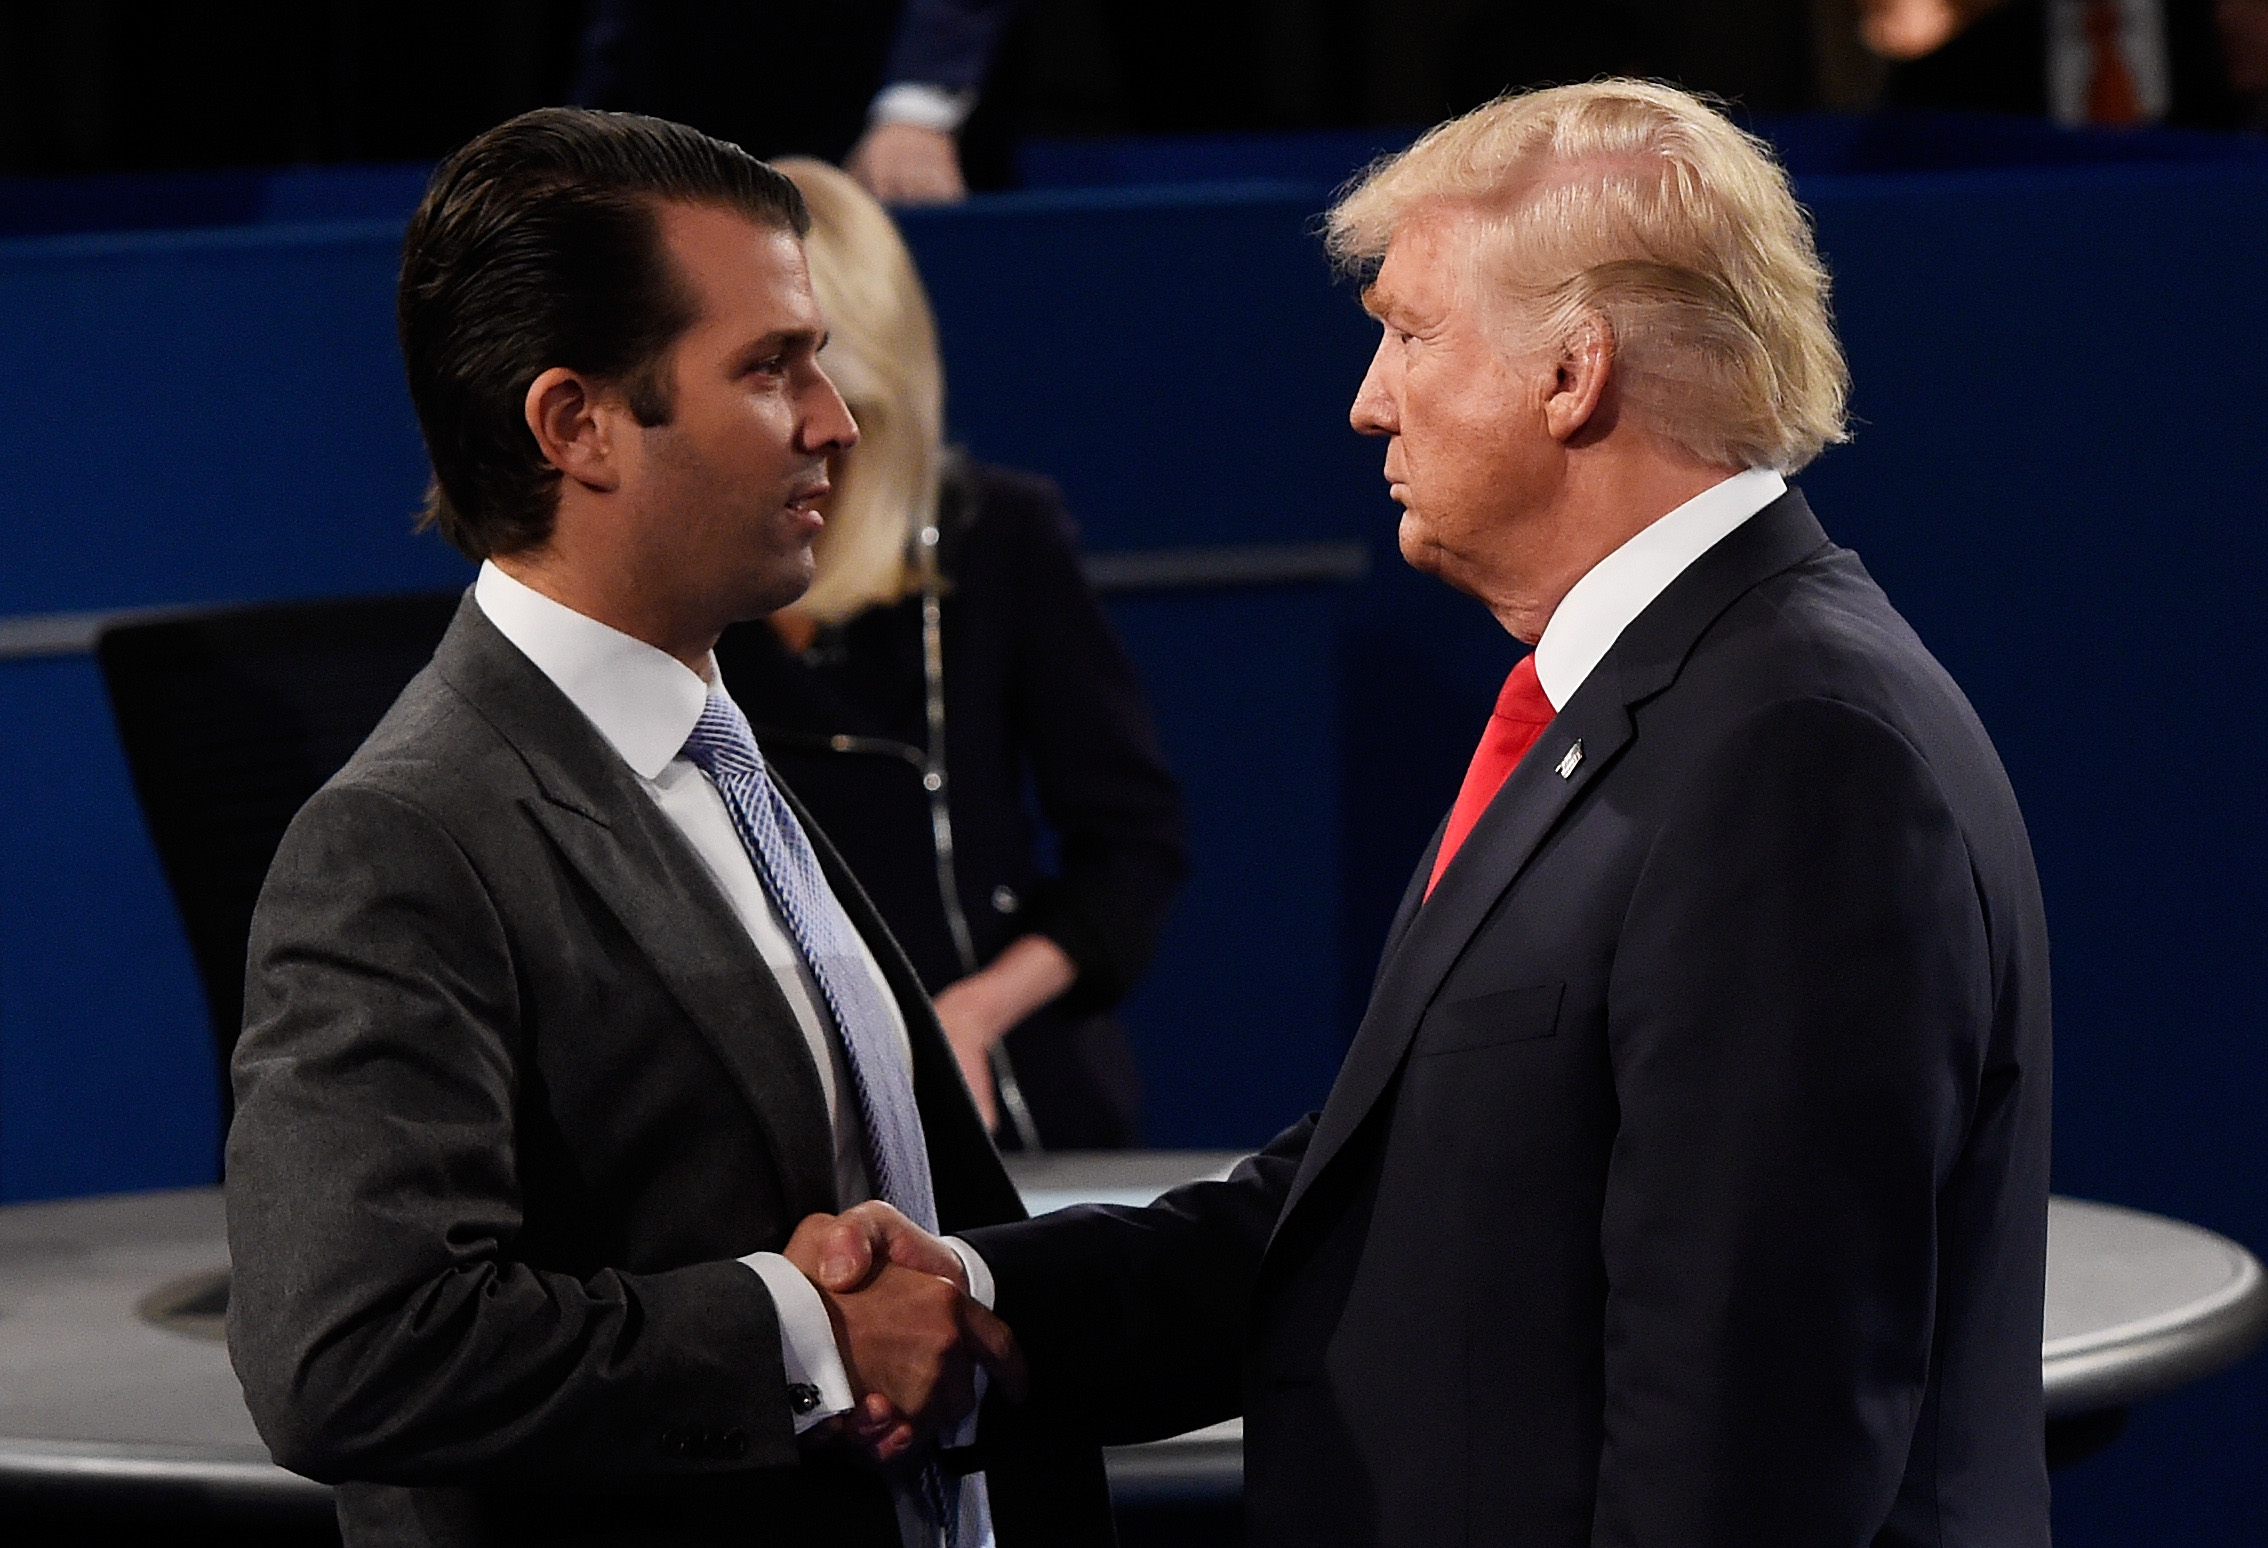 In this file photo, Donald Trump, Jr. (L) greets his father Donald Trump during the town hall debate at Washington University on October 9, 2016 in St Louis, Missouri.